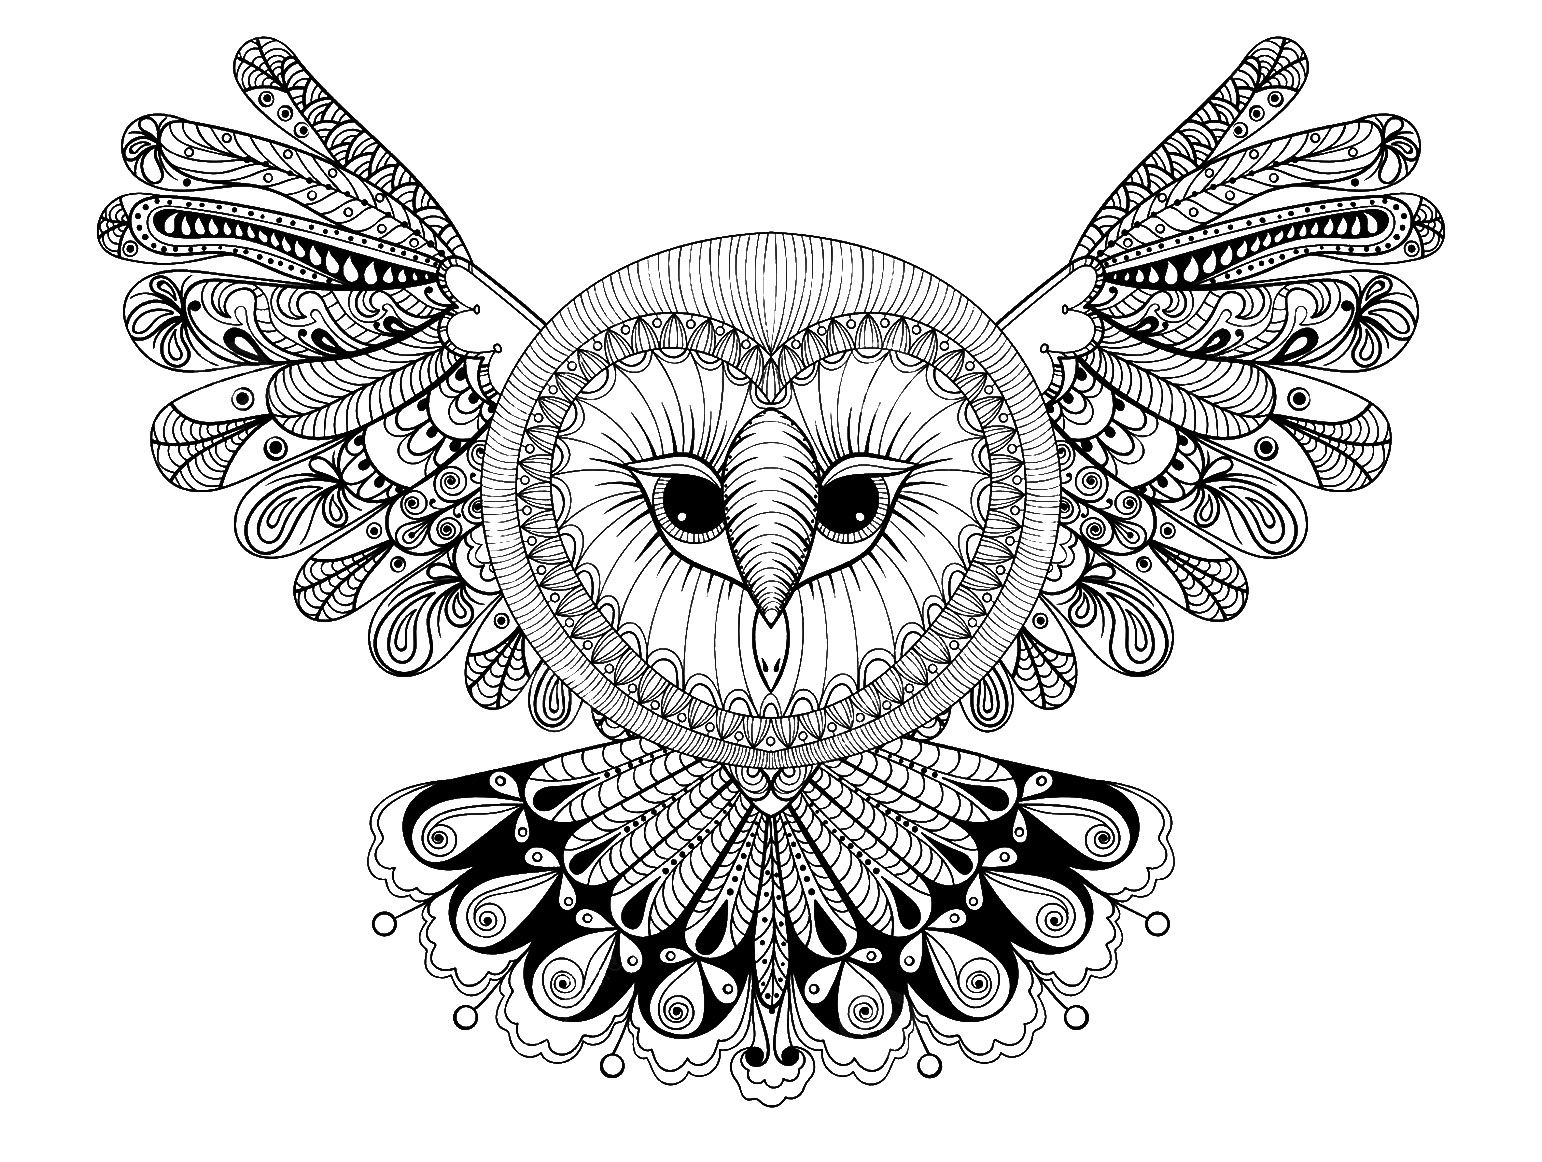 Animal Mandala Coloring Pages Best Coloring Pages For Kids Coloriage Hibou Coloriage Mandala Coloriage Mandala Animaux